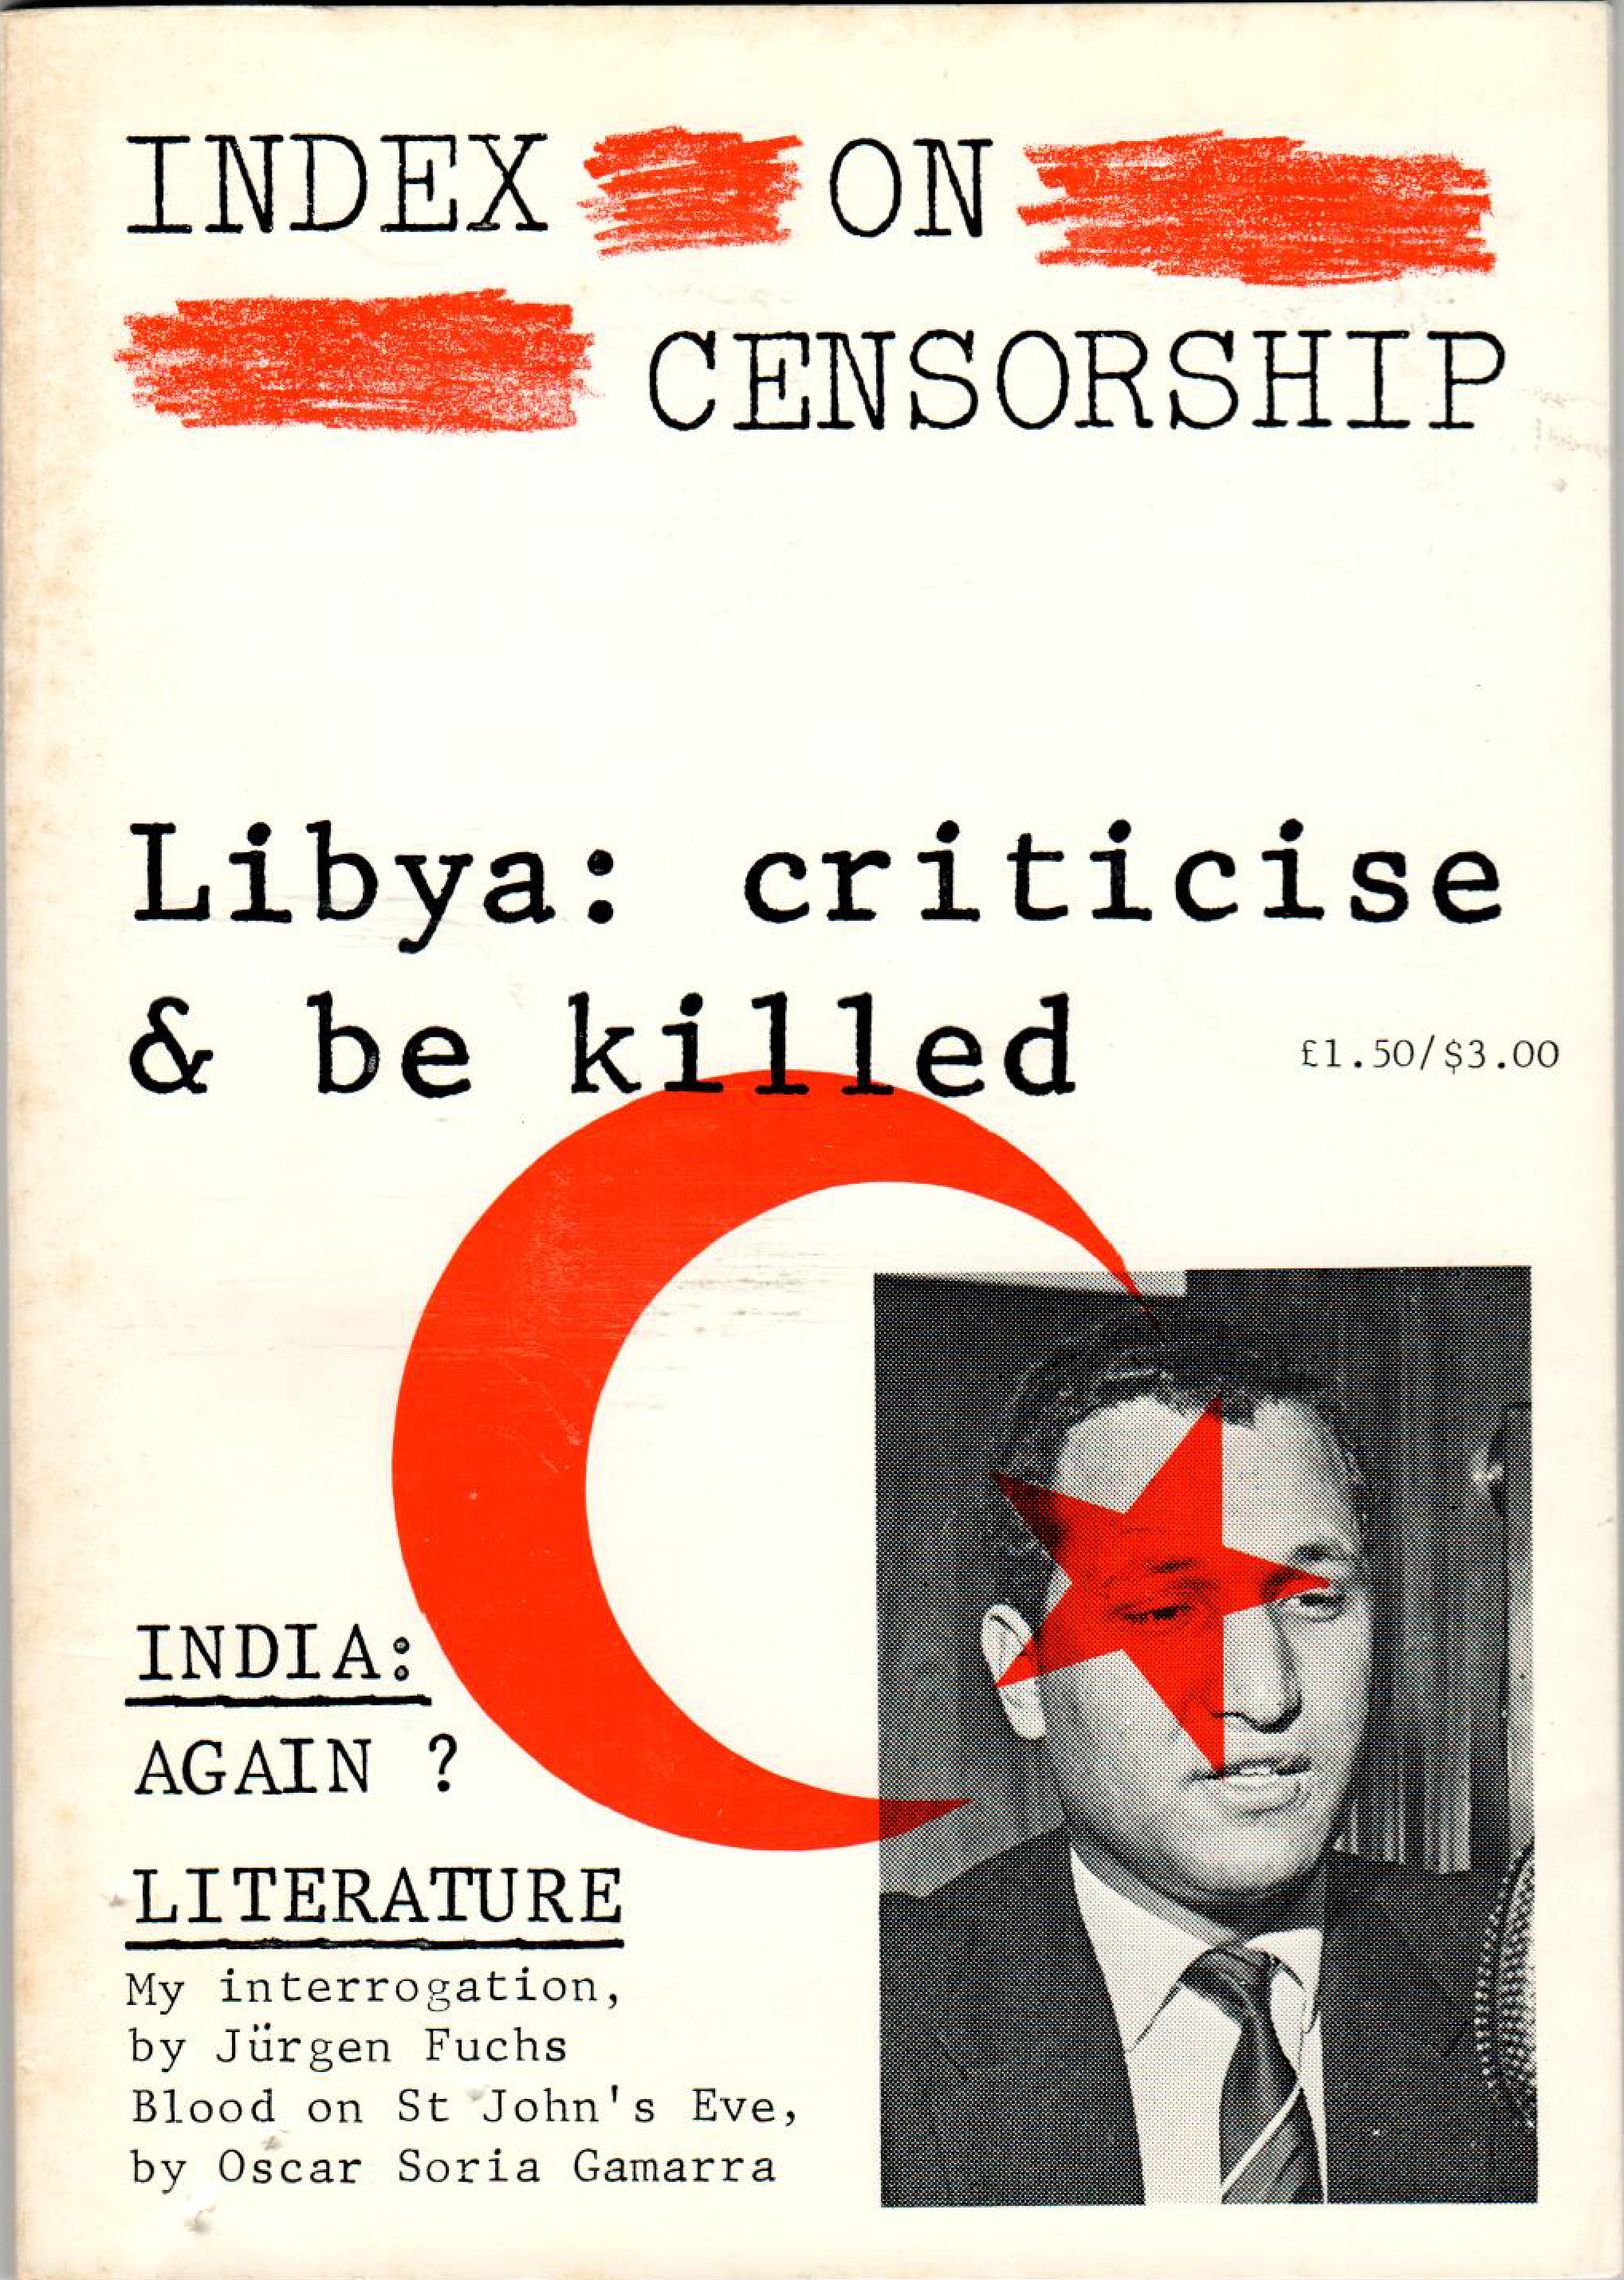 Libya: Criticise & be killed, the December 1980 issue of Index on Censorship magazine